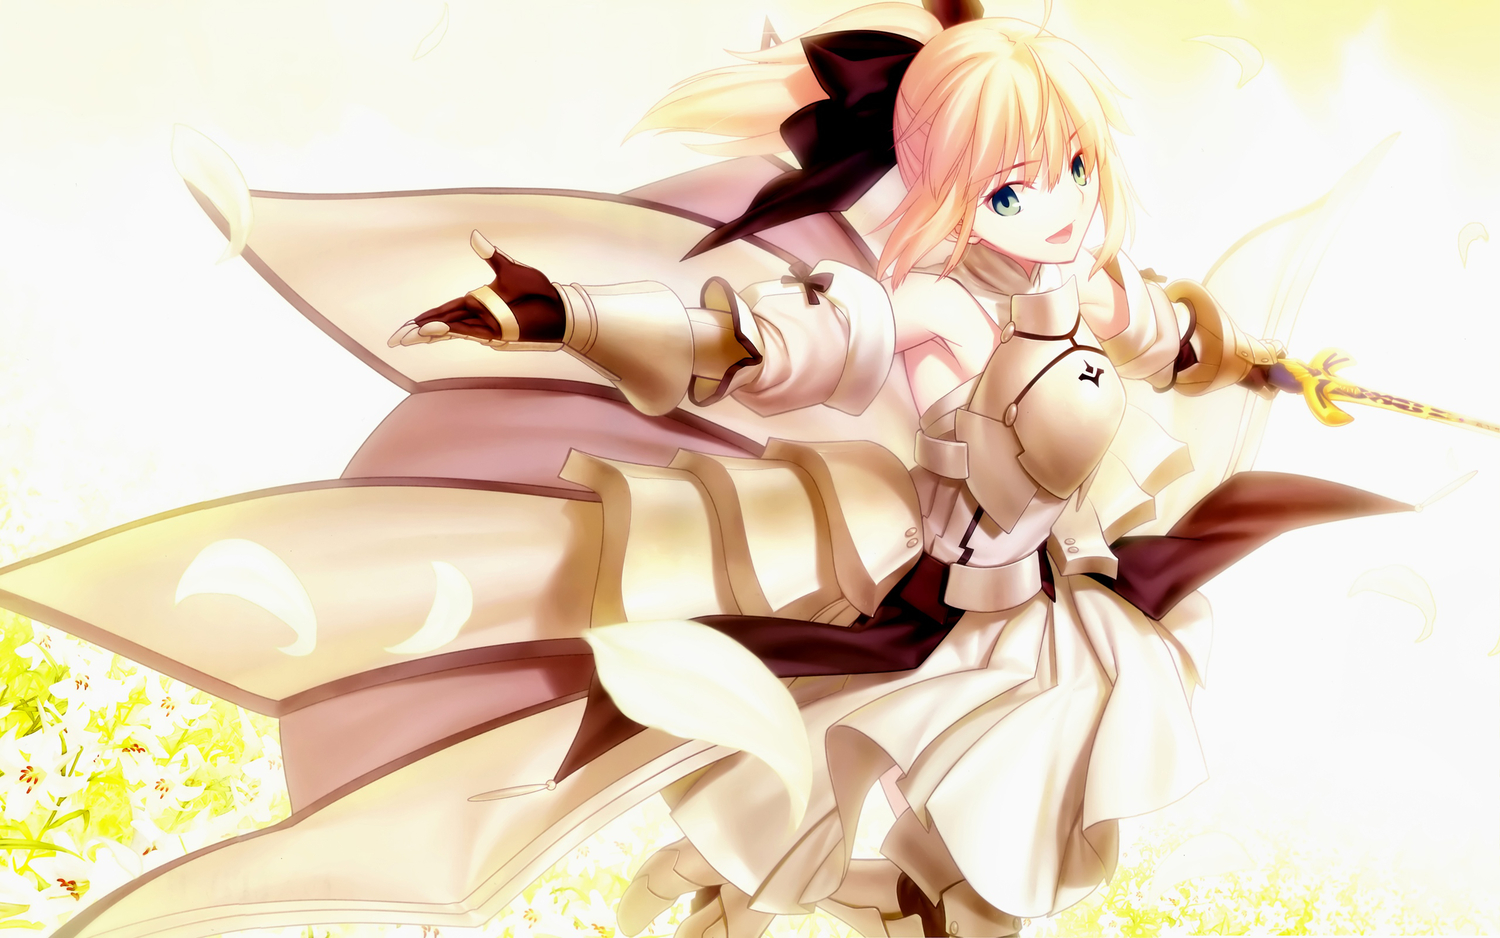 armor blonde_hair bow dress fate/stay_night fate/unlimited_codes ponytail saber_lily weapon